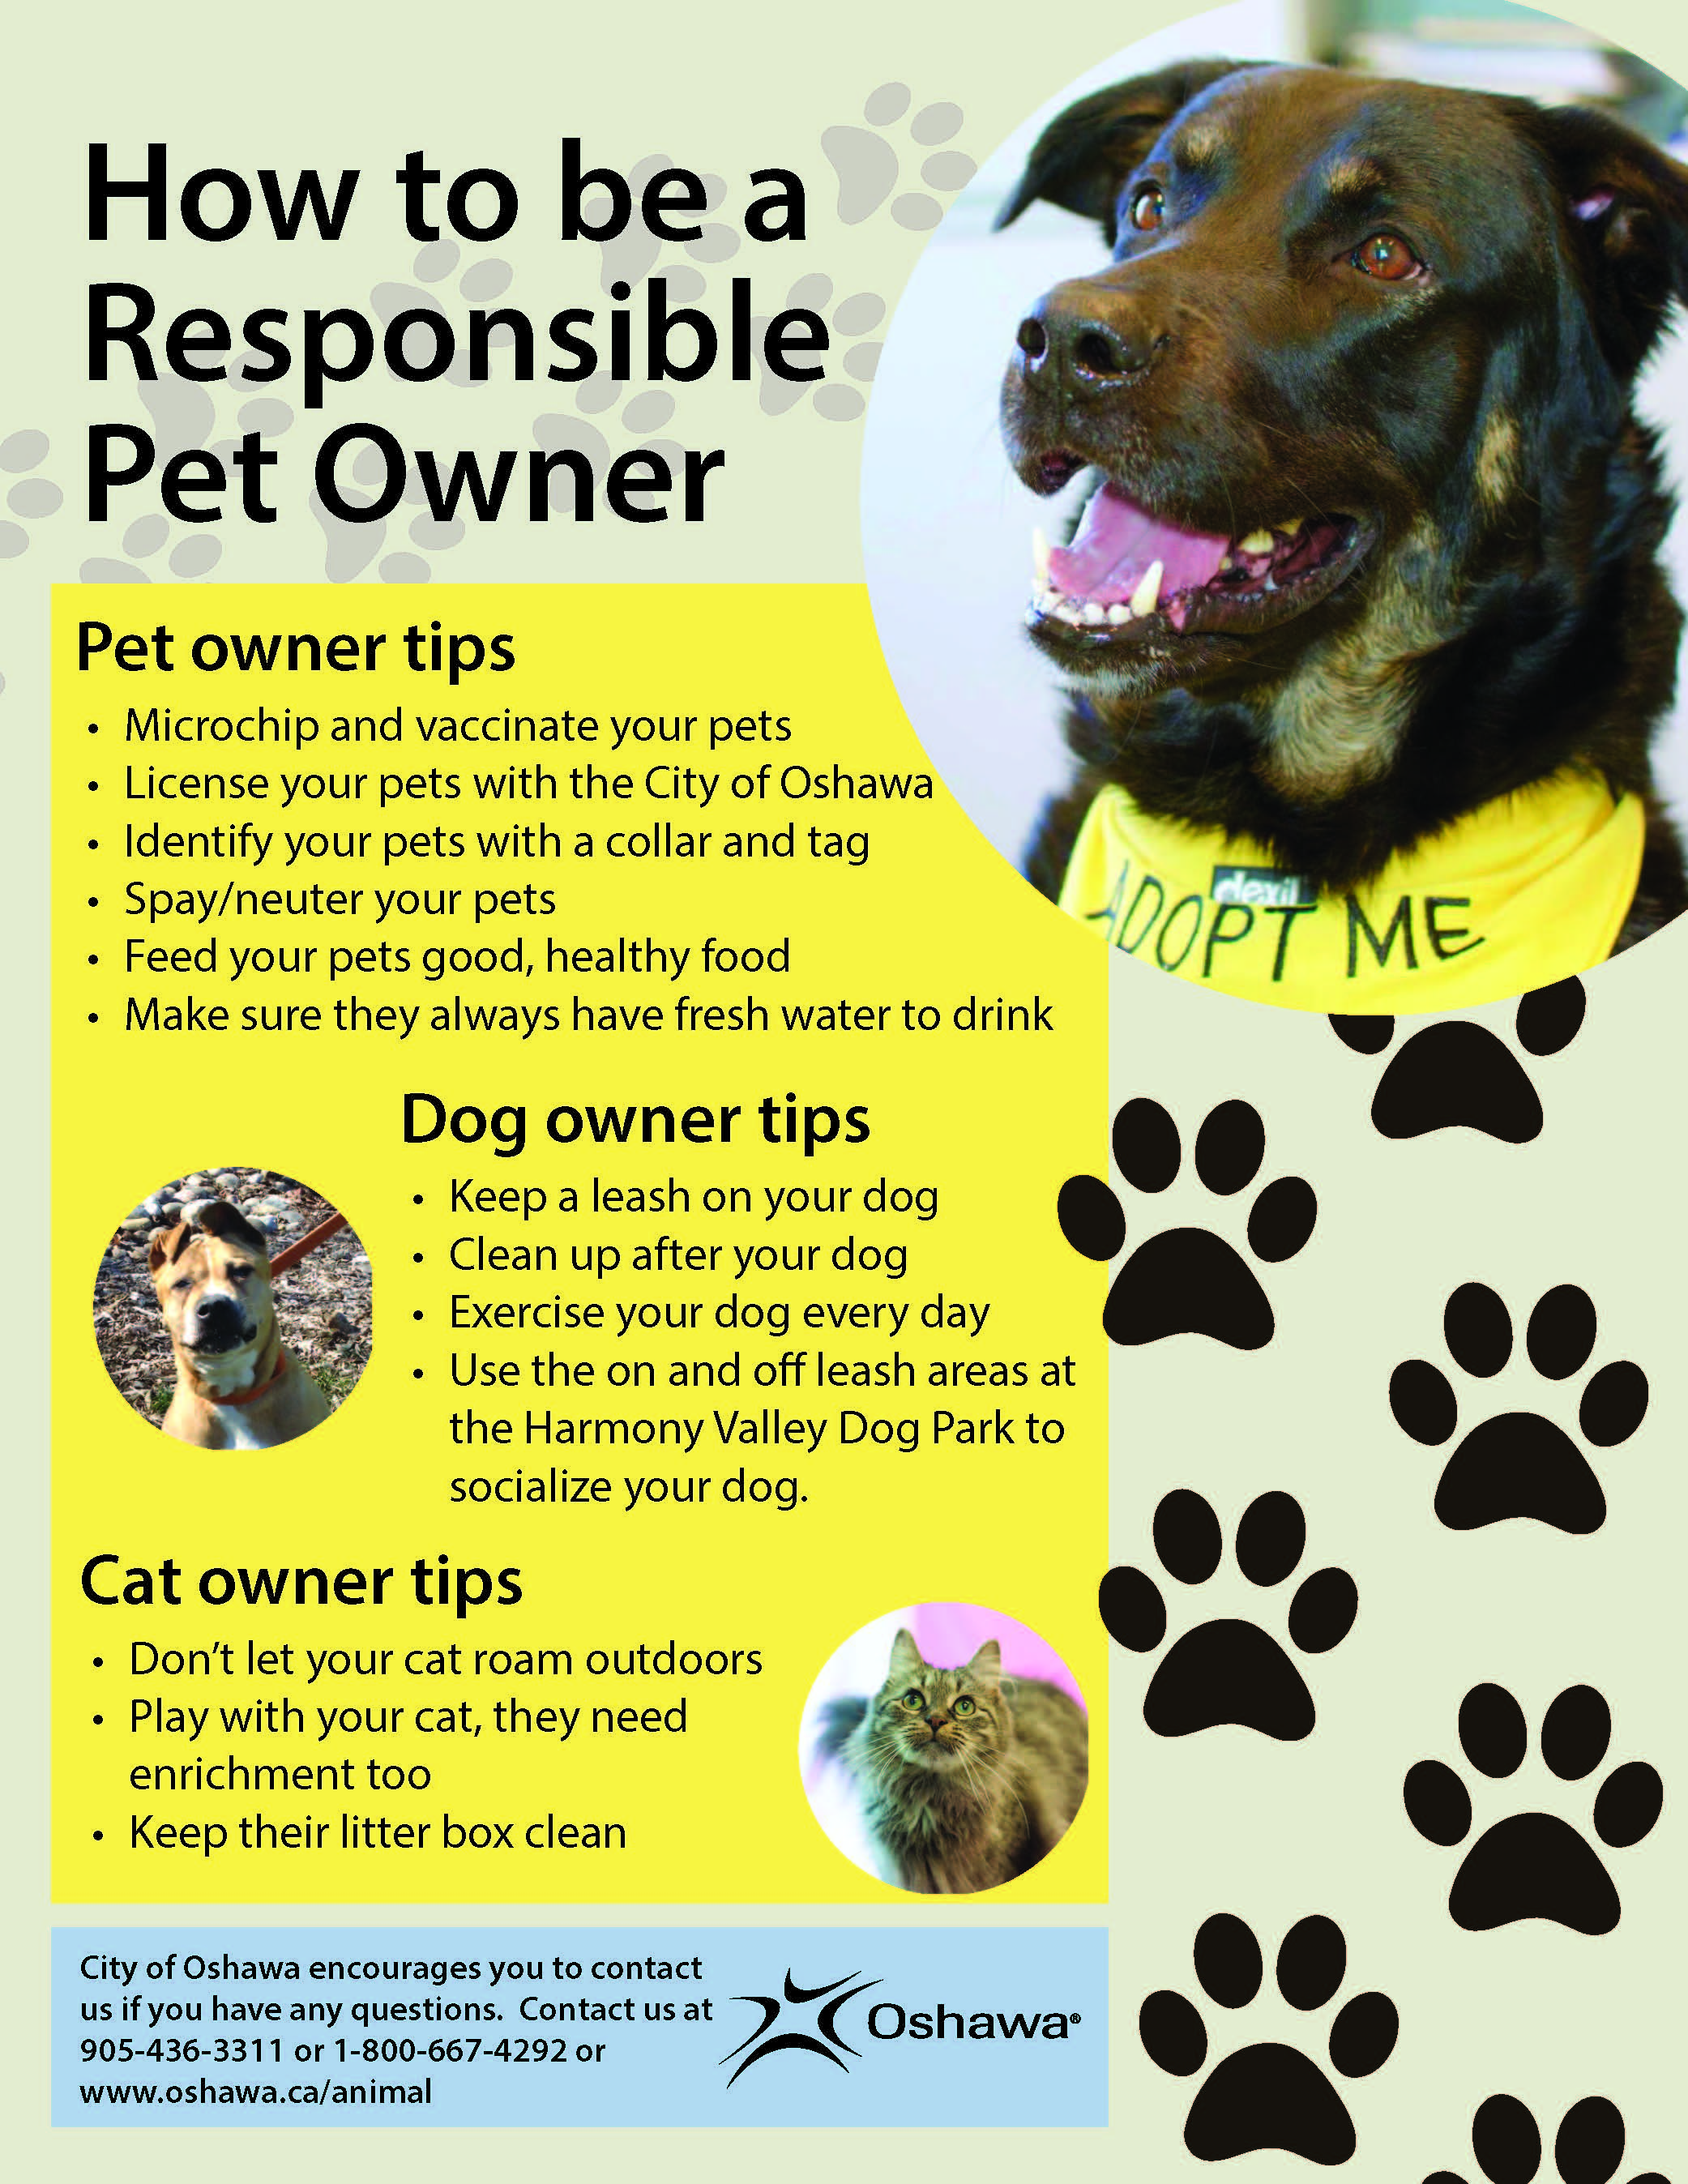 responsible pet owner February is responsible pet owners month owning a pet is a privilege, but the benefits of pet ownership come with responsibilities a responsible pet owner commits to the relationship for the life of the pet recognizes that pet ownership requires an investment of time and money obeys local laws and ordinances regarding keeping a pet insures.